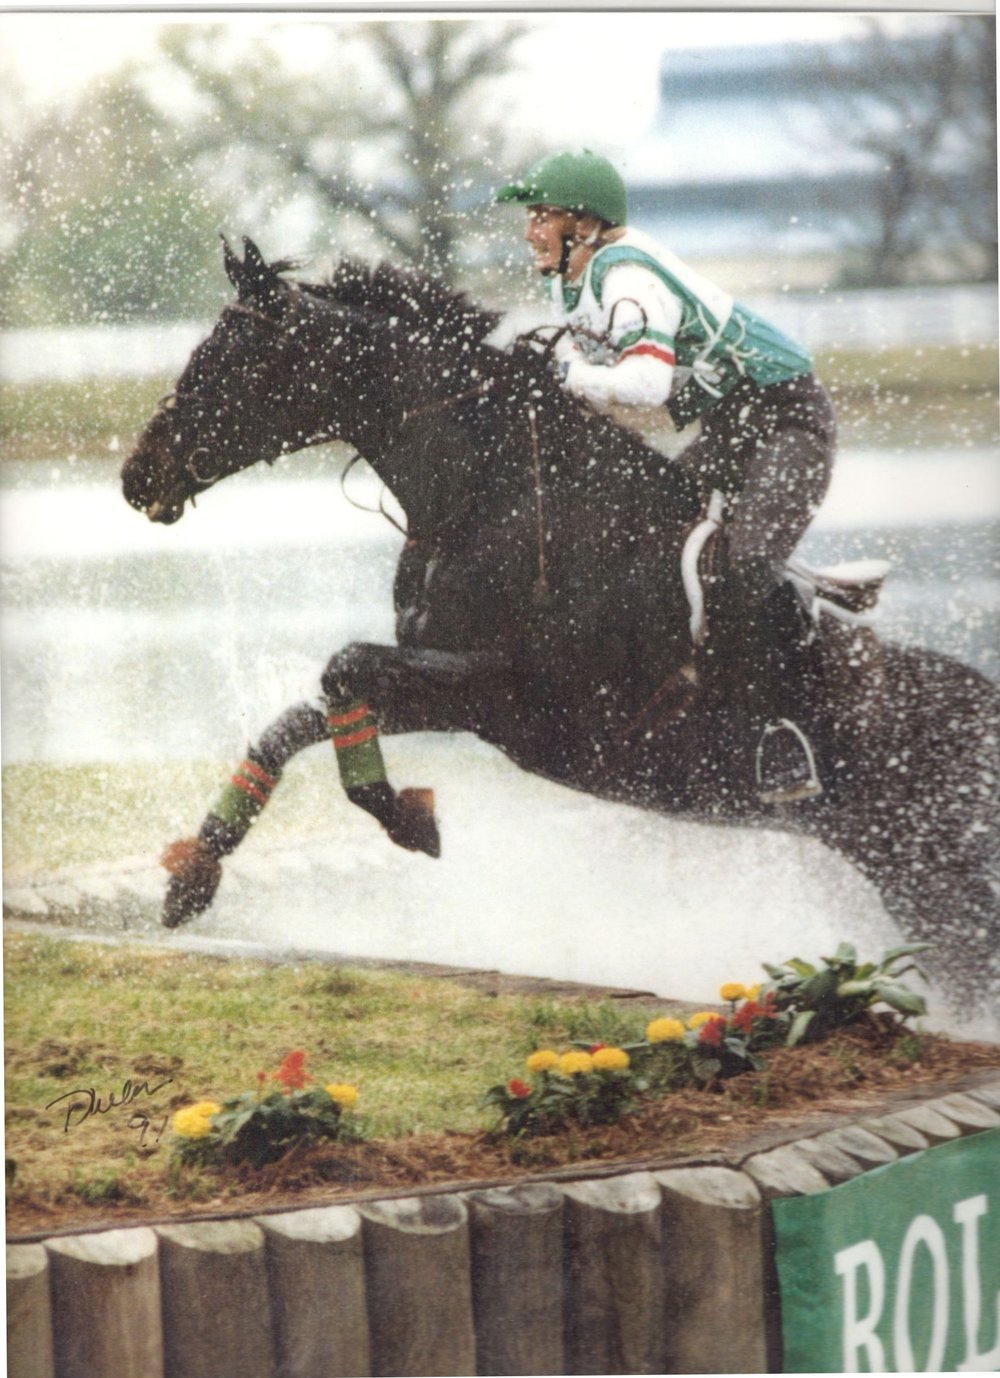 LISA TER WOORT - CBDOLisa has a deep knowledge of the local and international equestrian community, having owned, trained and competed with her horse Mindy Rose as a member of the Canadian national three-day eventing team.